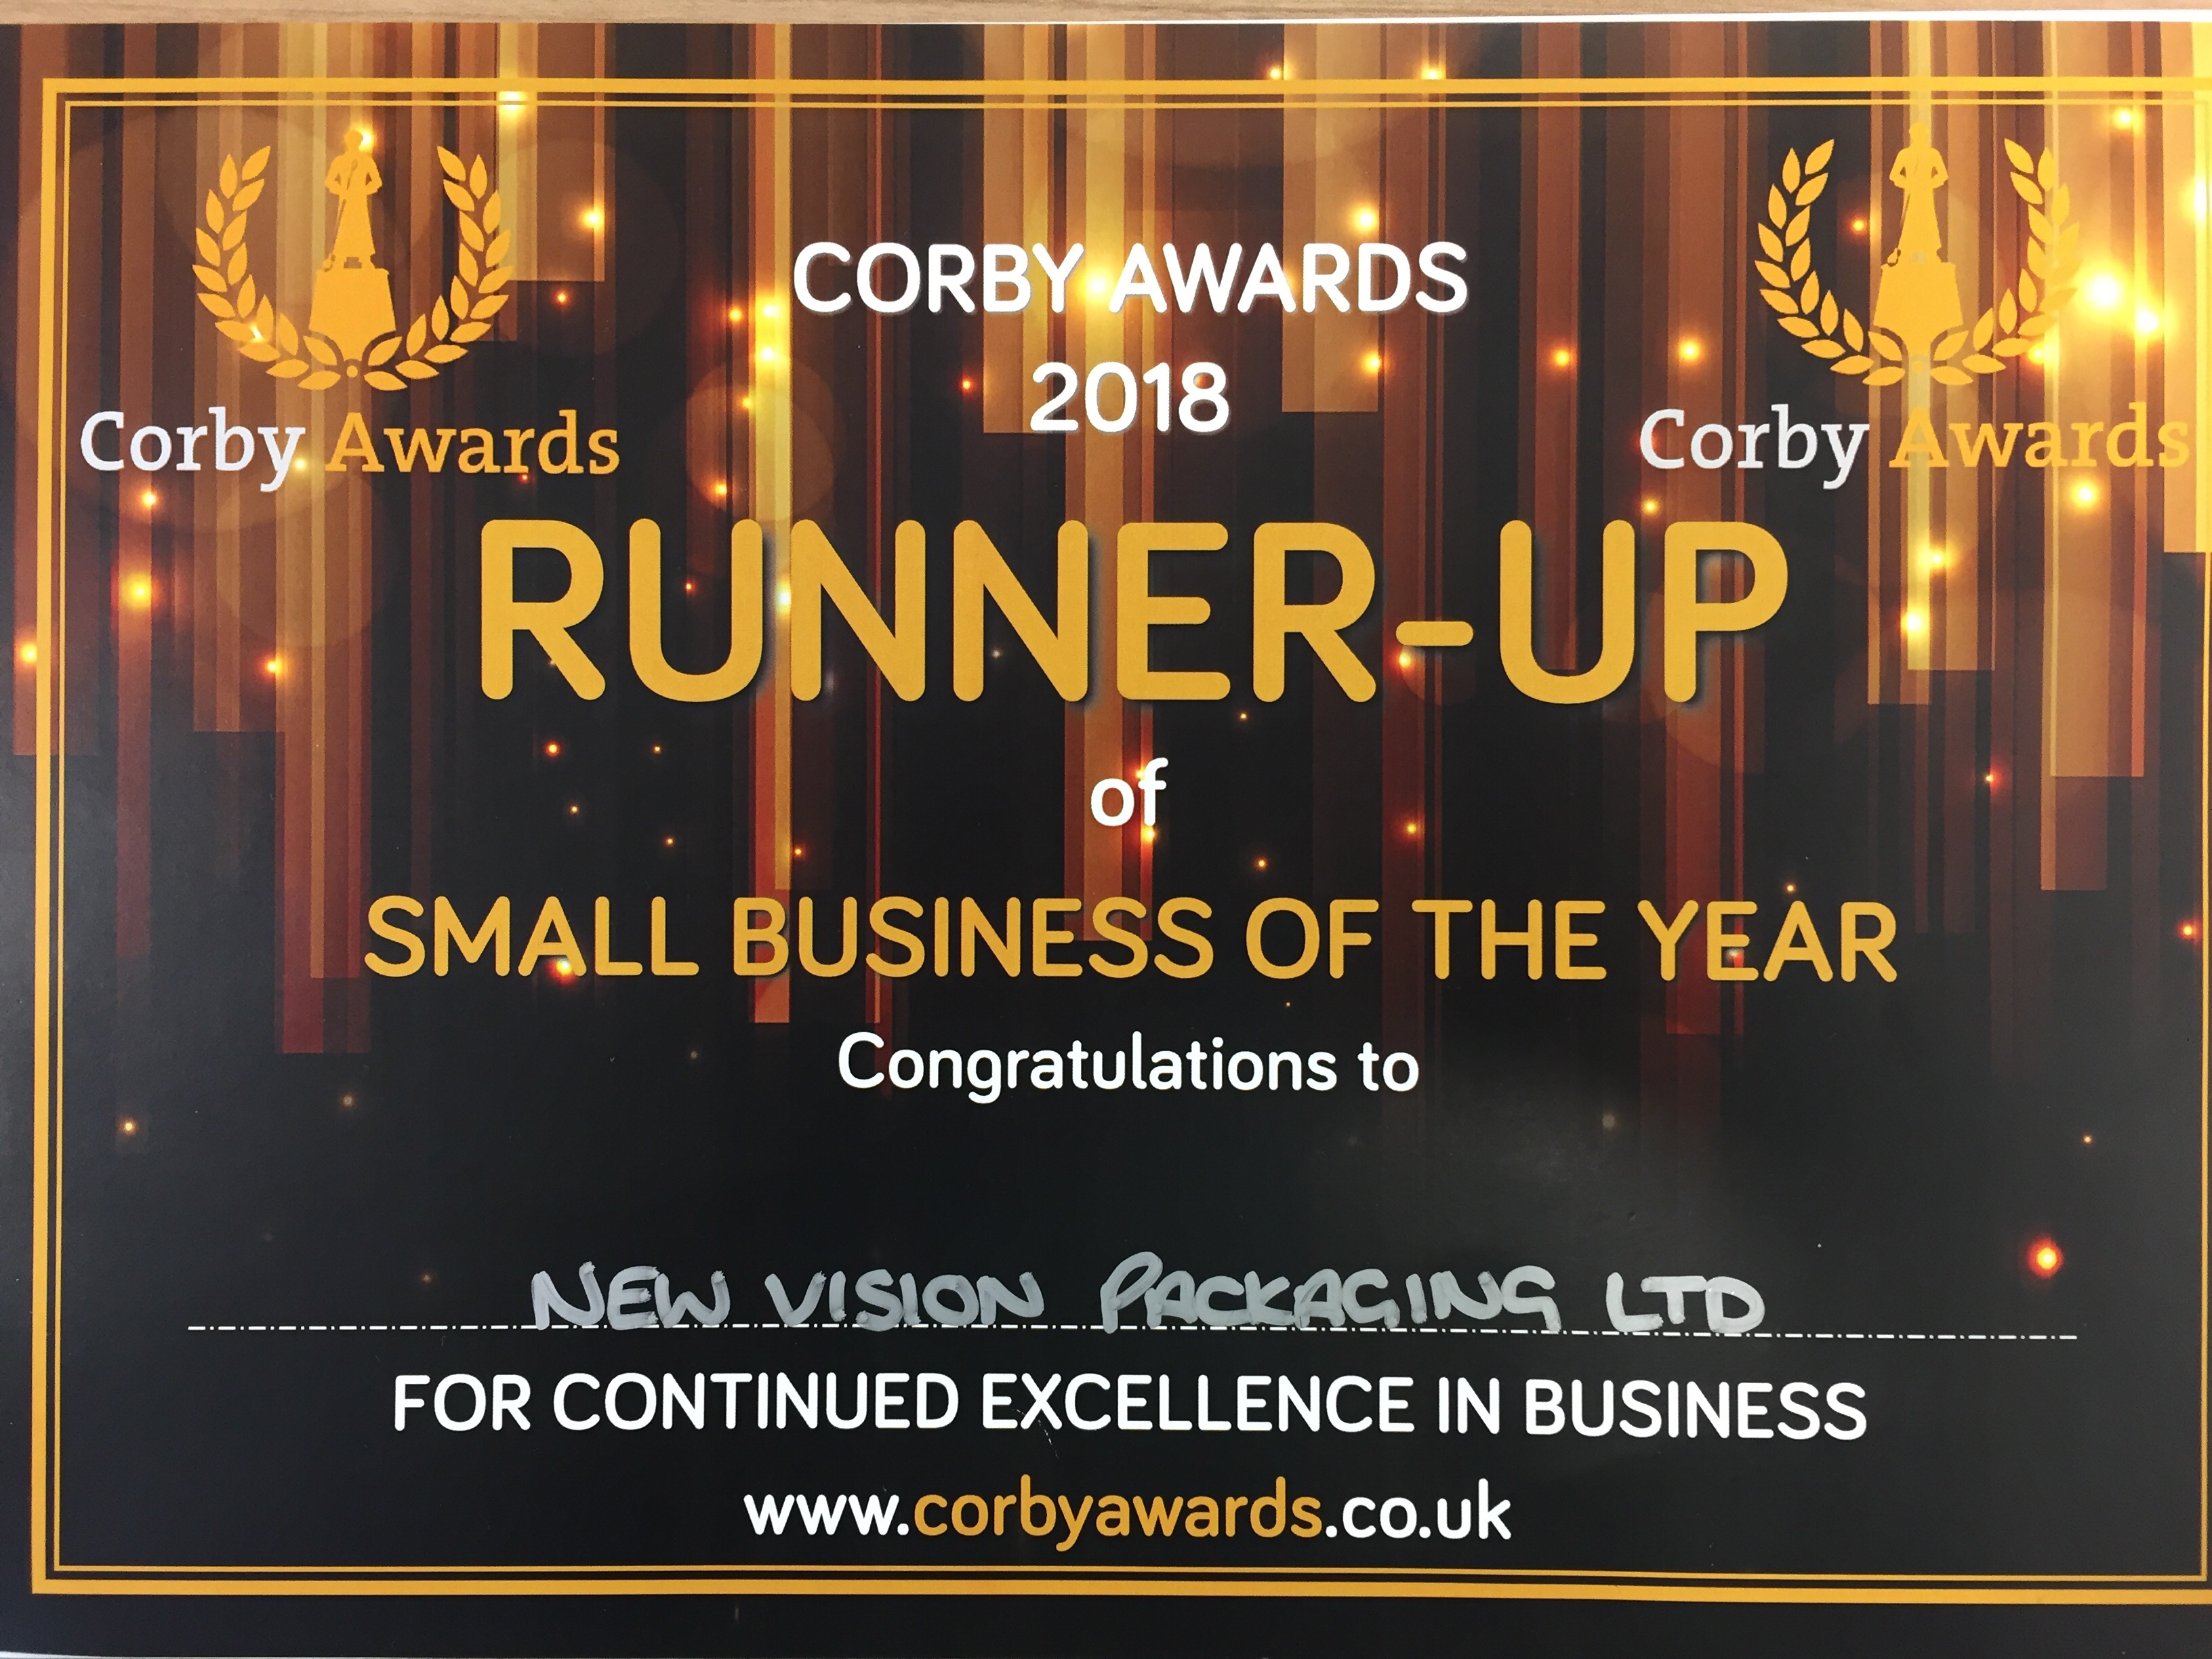 New Vision Packaging wins runner-up in 'Small Business of the Year' at the Corby Awards 2018